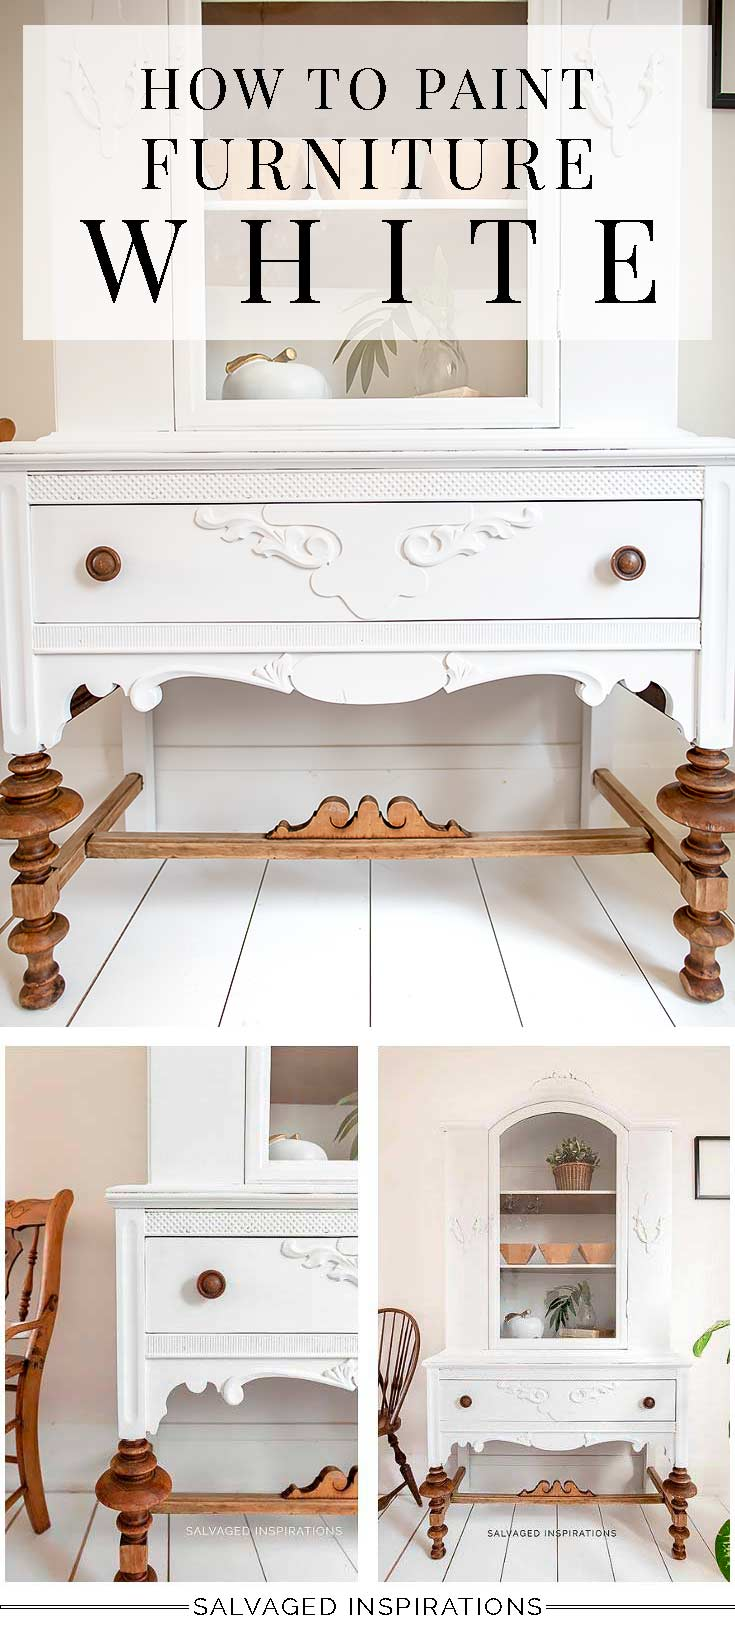 How To Paint Furniture White 5 Failproof Steps